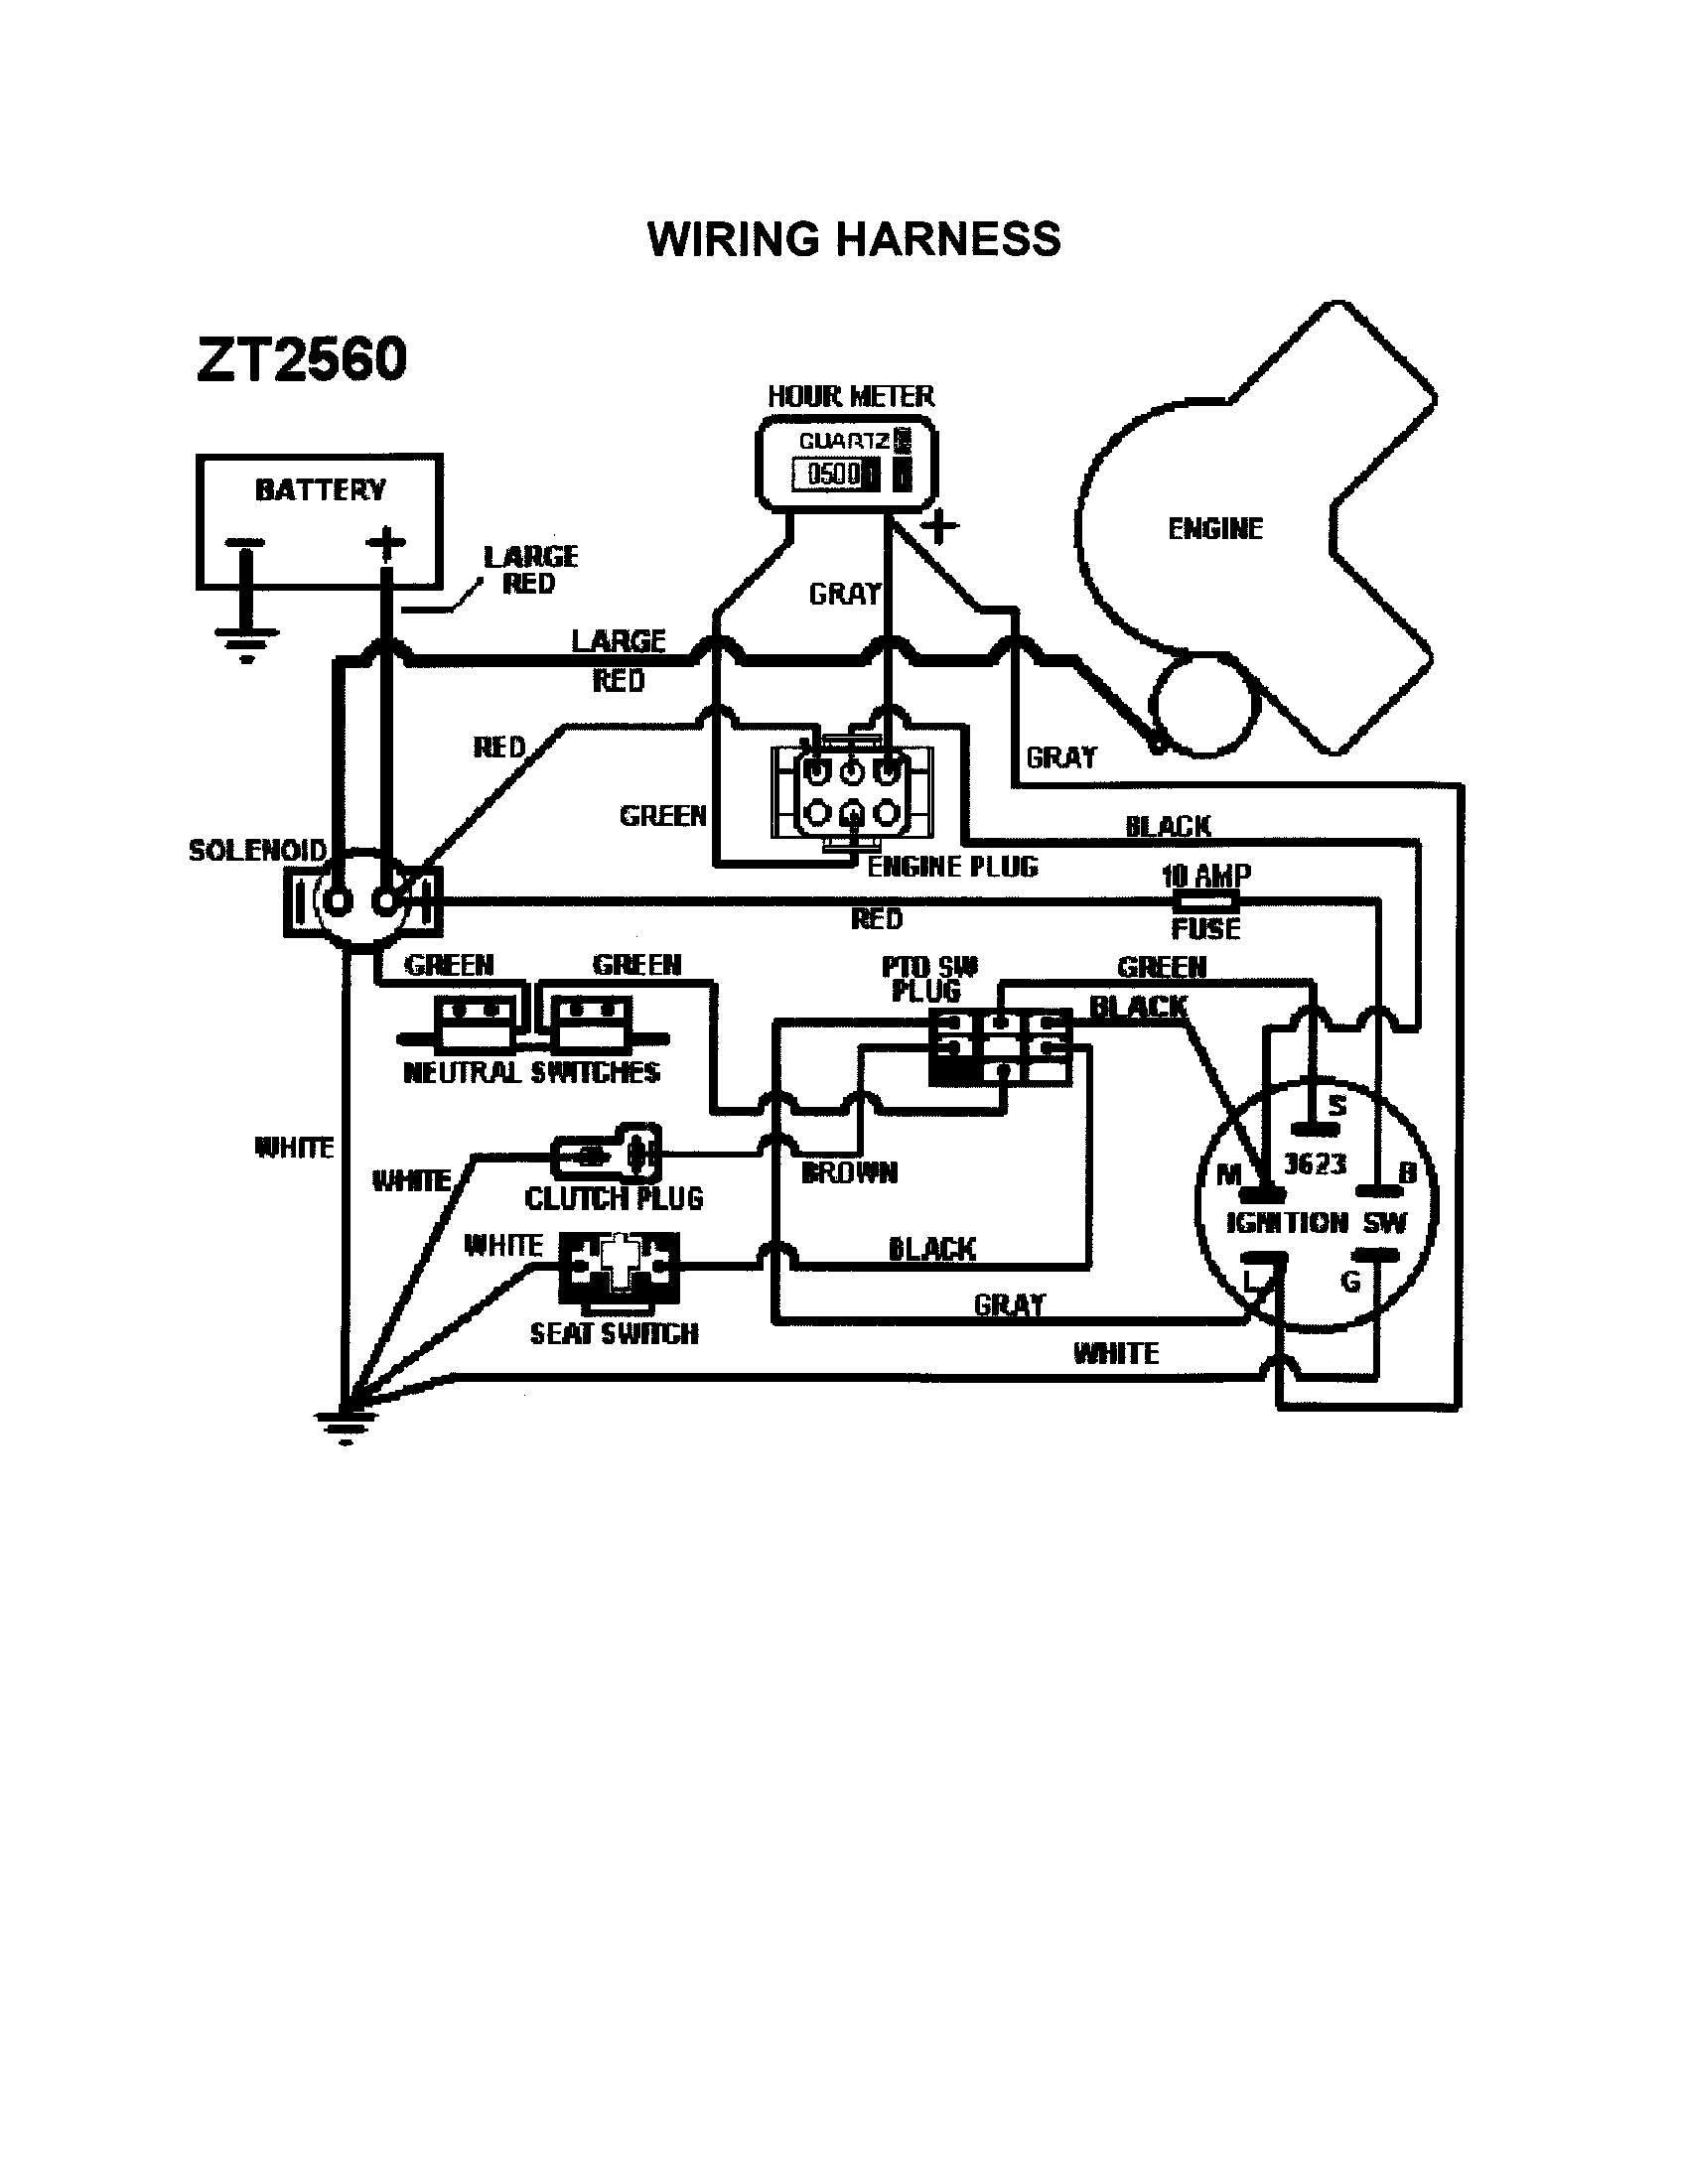 Wiring diagram for swisher pull mower wiring discover your wiring diagram